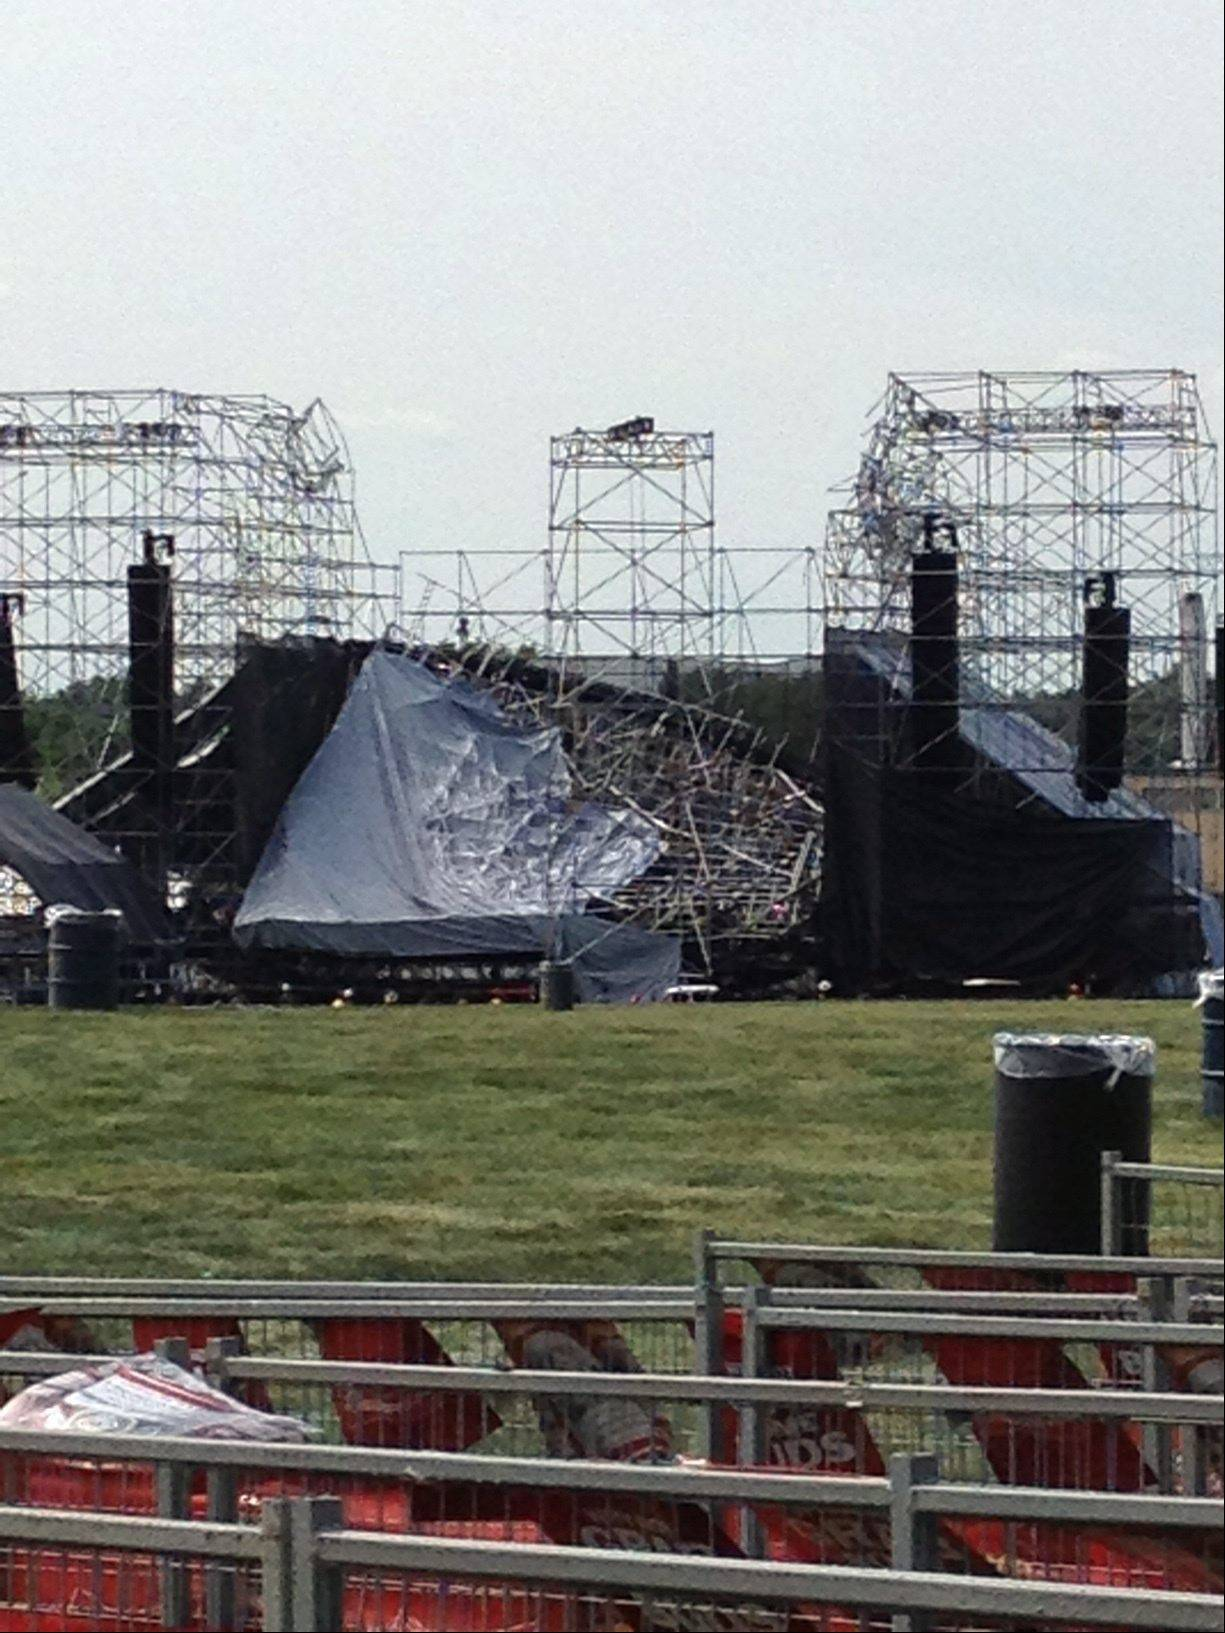 This photo provided by Alexandra Mihan shows a collapsed stage at the site for a Radiohead concert at Downsview Park in Toronto on Saturday June 16, 2012. Toronto paramedics say one person is dead and another is seriously hurt after the stage collapsed while setting up for a Radiohead concert. They say two other people were injured and are being assessed.